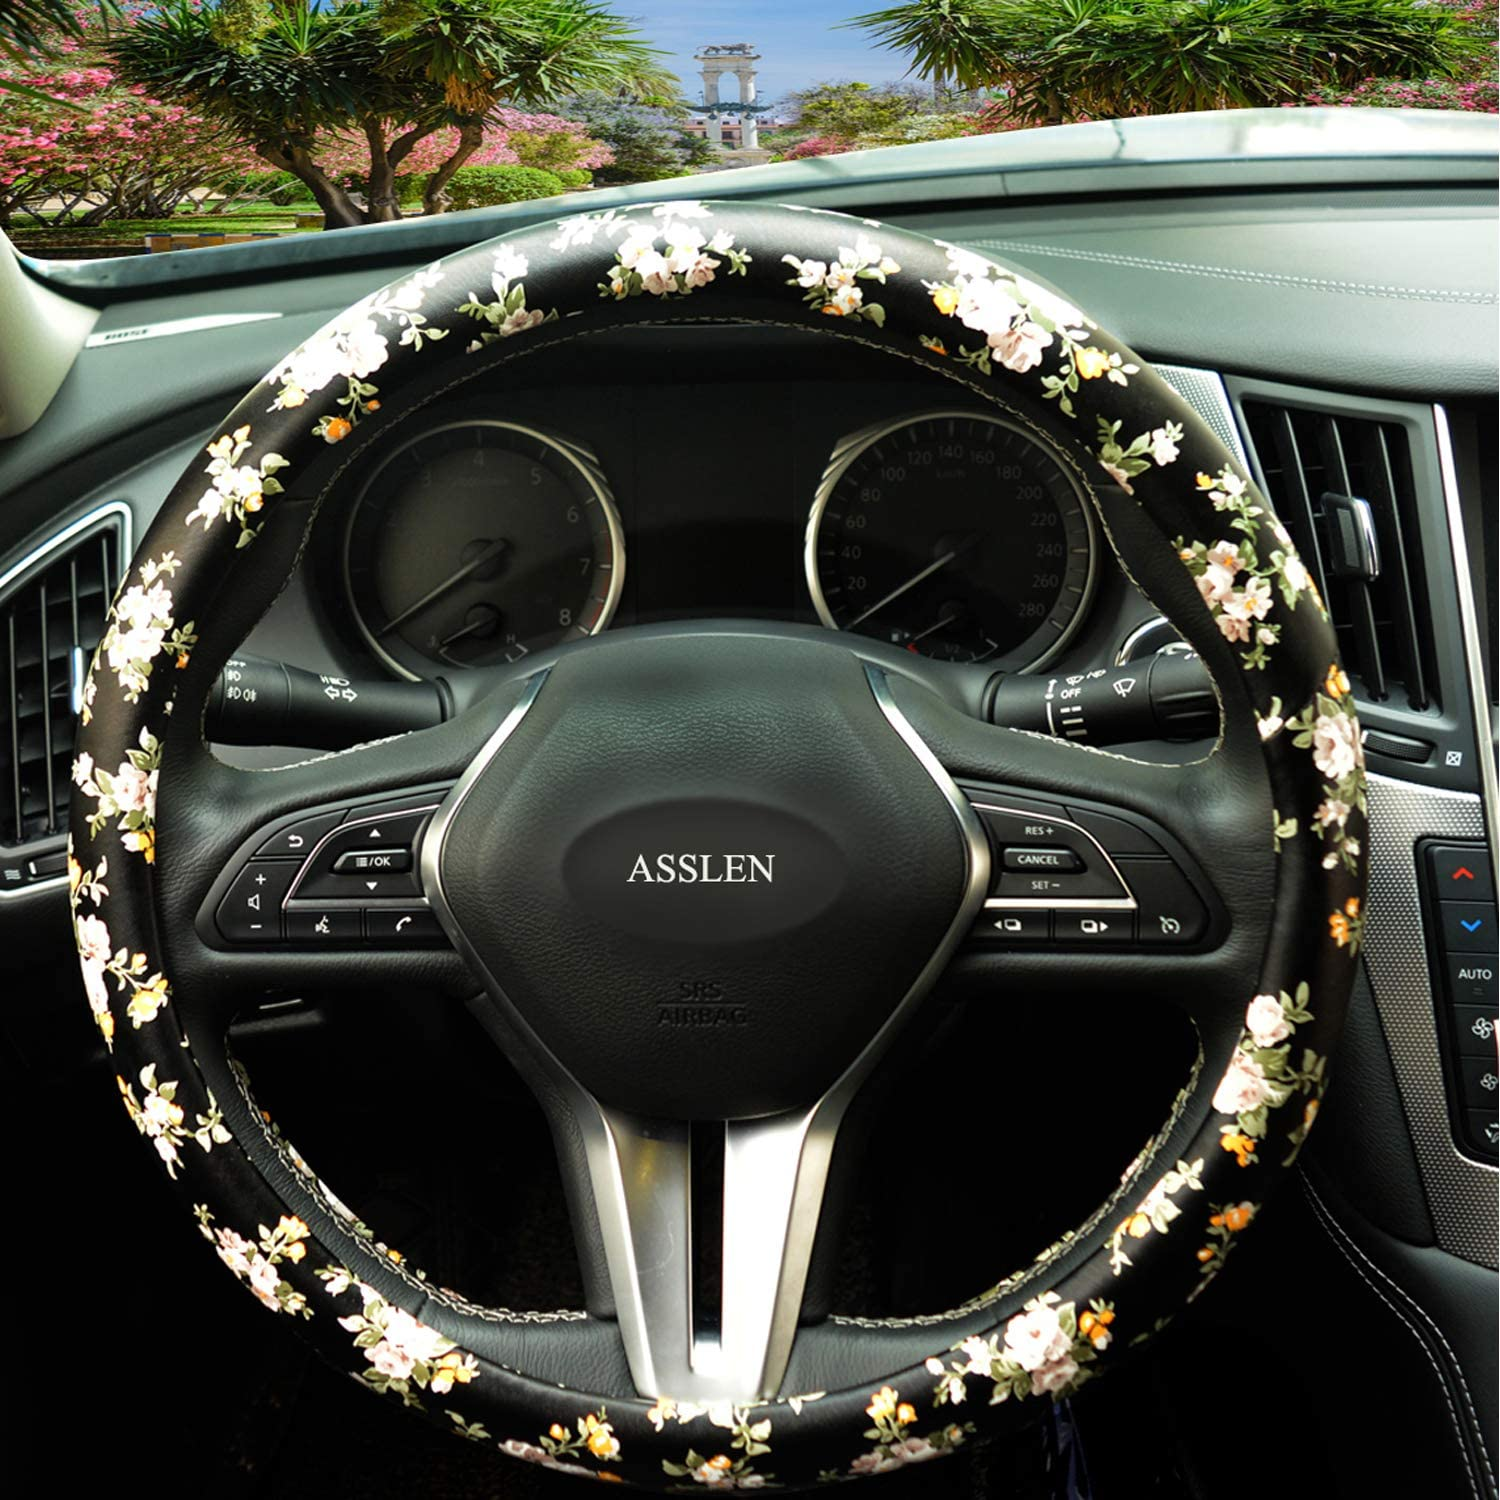 Rose Style, 141//2-151//4 Floral Auto Car Steering Wheel Cover Microfiber Leather Anti Slip and Sweat Absorption Chinese Style Universal 15 Inch